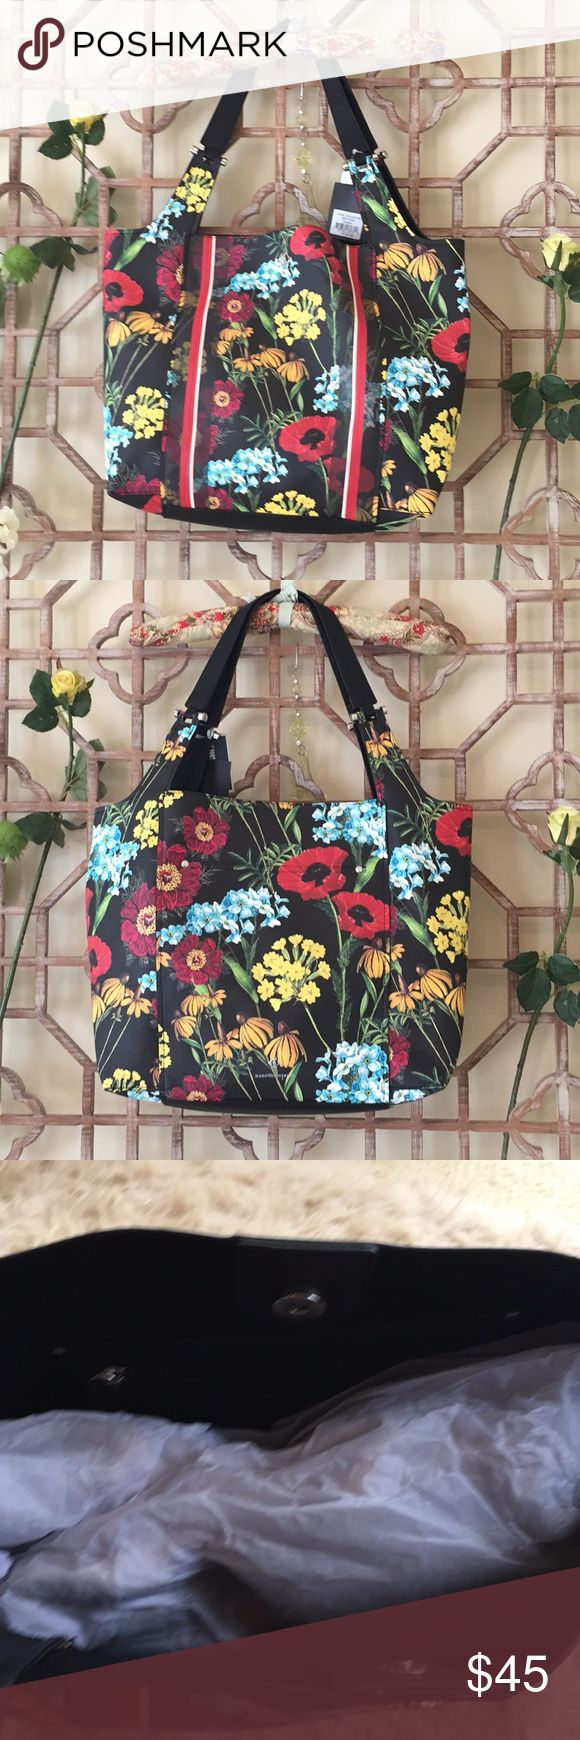 """NWT Nanette Lepore floral shoulder bag Brand new with tag by Nanette Lepore Update your look with the floral printed shopper tote. A magnetic snap opens to a spacious interior with a zip pocket. This tote mixes traditional style with contemporary chic.  - 17"""" X 5.5"""" X 12.5"""" handle drop 10"""". Large enough handbag,can accomodate your books, small makeups, wallet, umbrella  Classic vegan leather &durable silver hardware, body with floral design. Elegant high-end design goes well with any outfit…"""